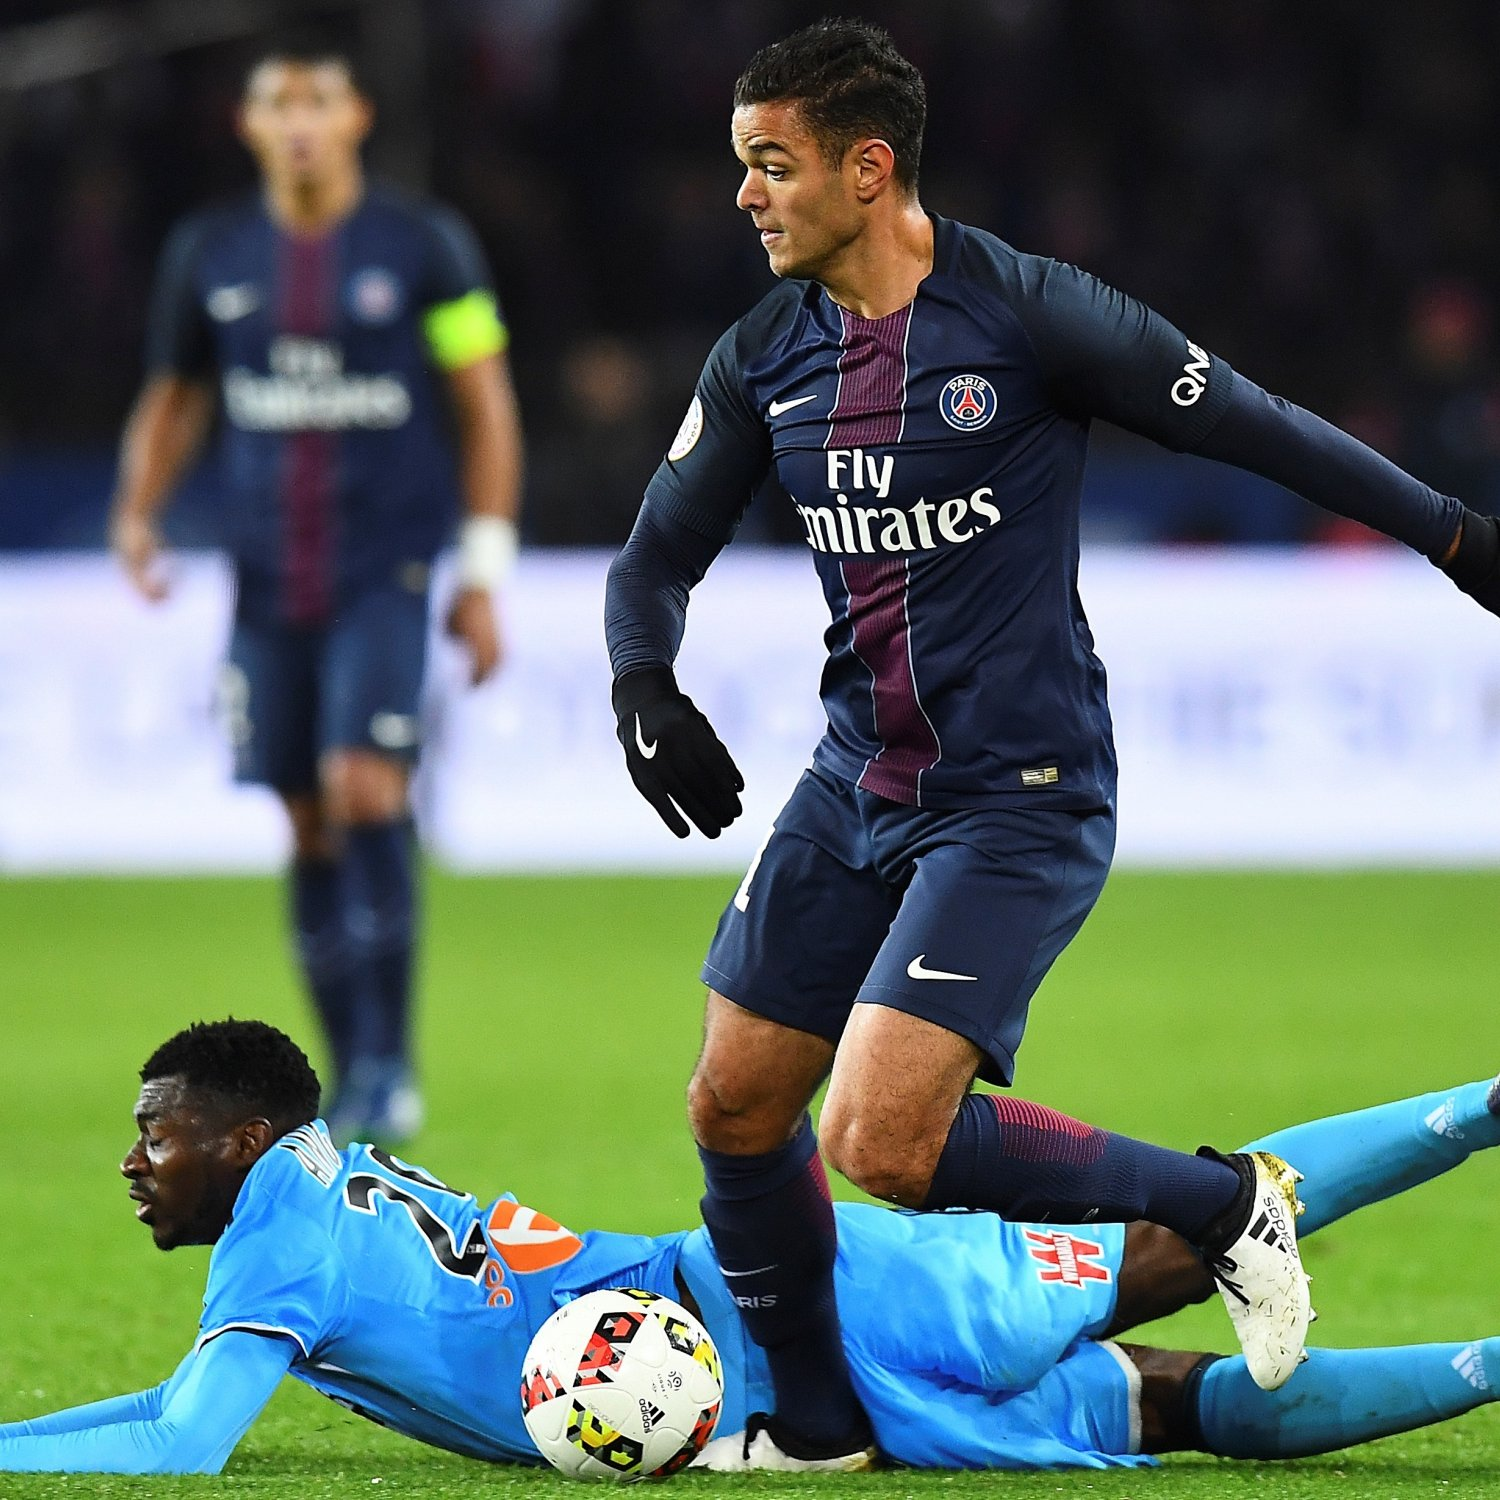 Paris Saint Germain S Lucas Moura Arrives For Tottenham: Rating PSG's French Players On Their Performances This